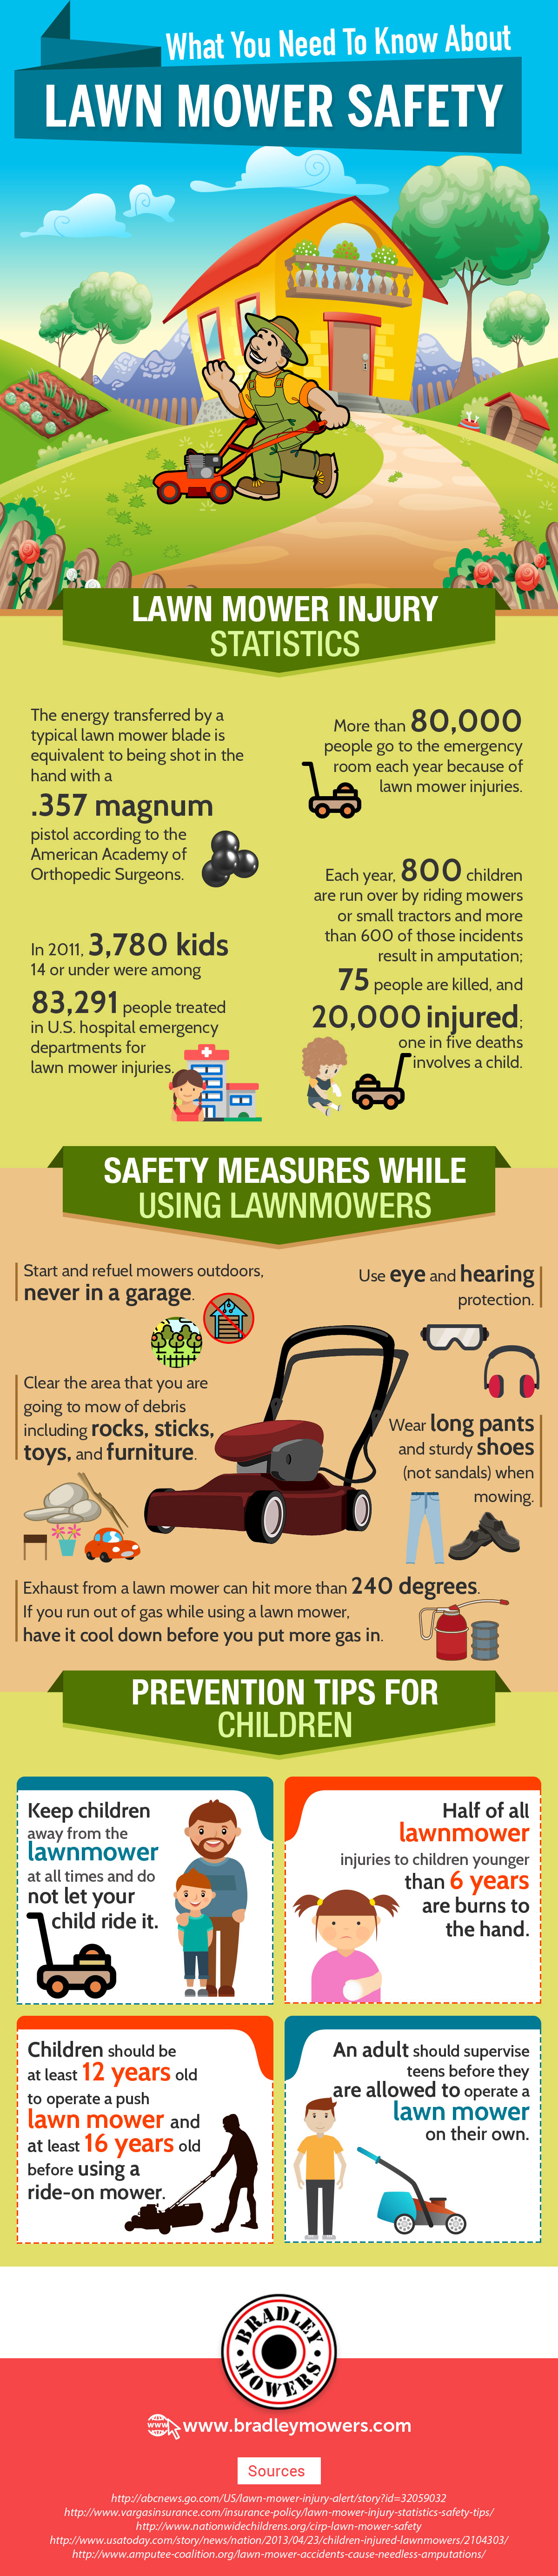 What You Need To Know About Lawn Mower Safety